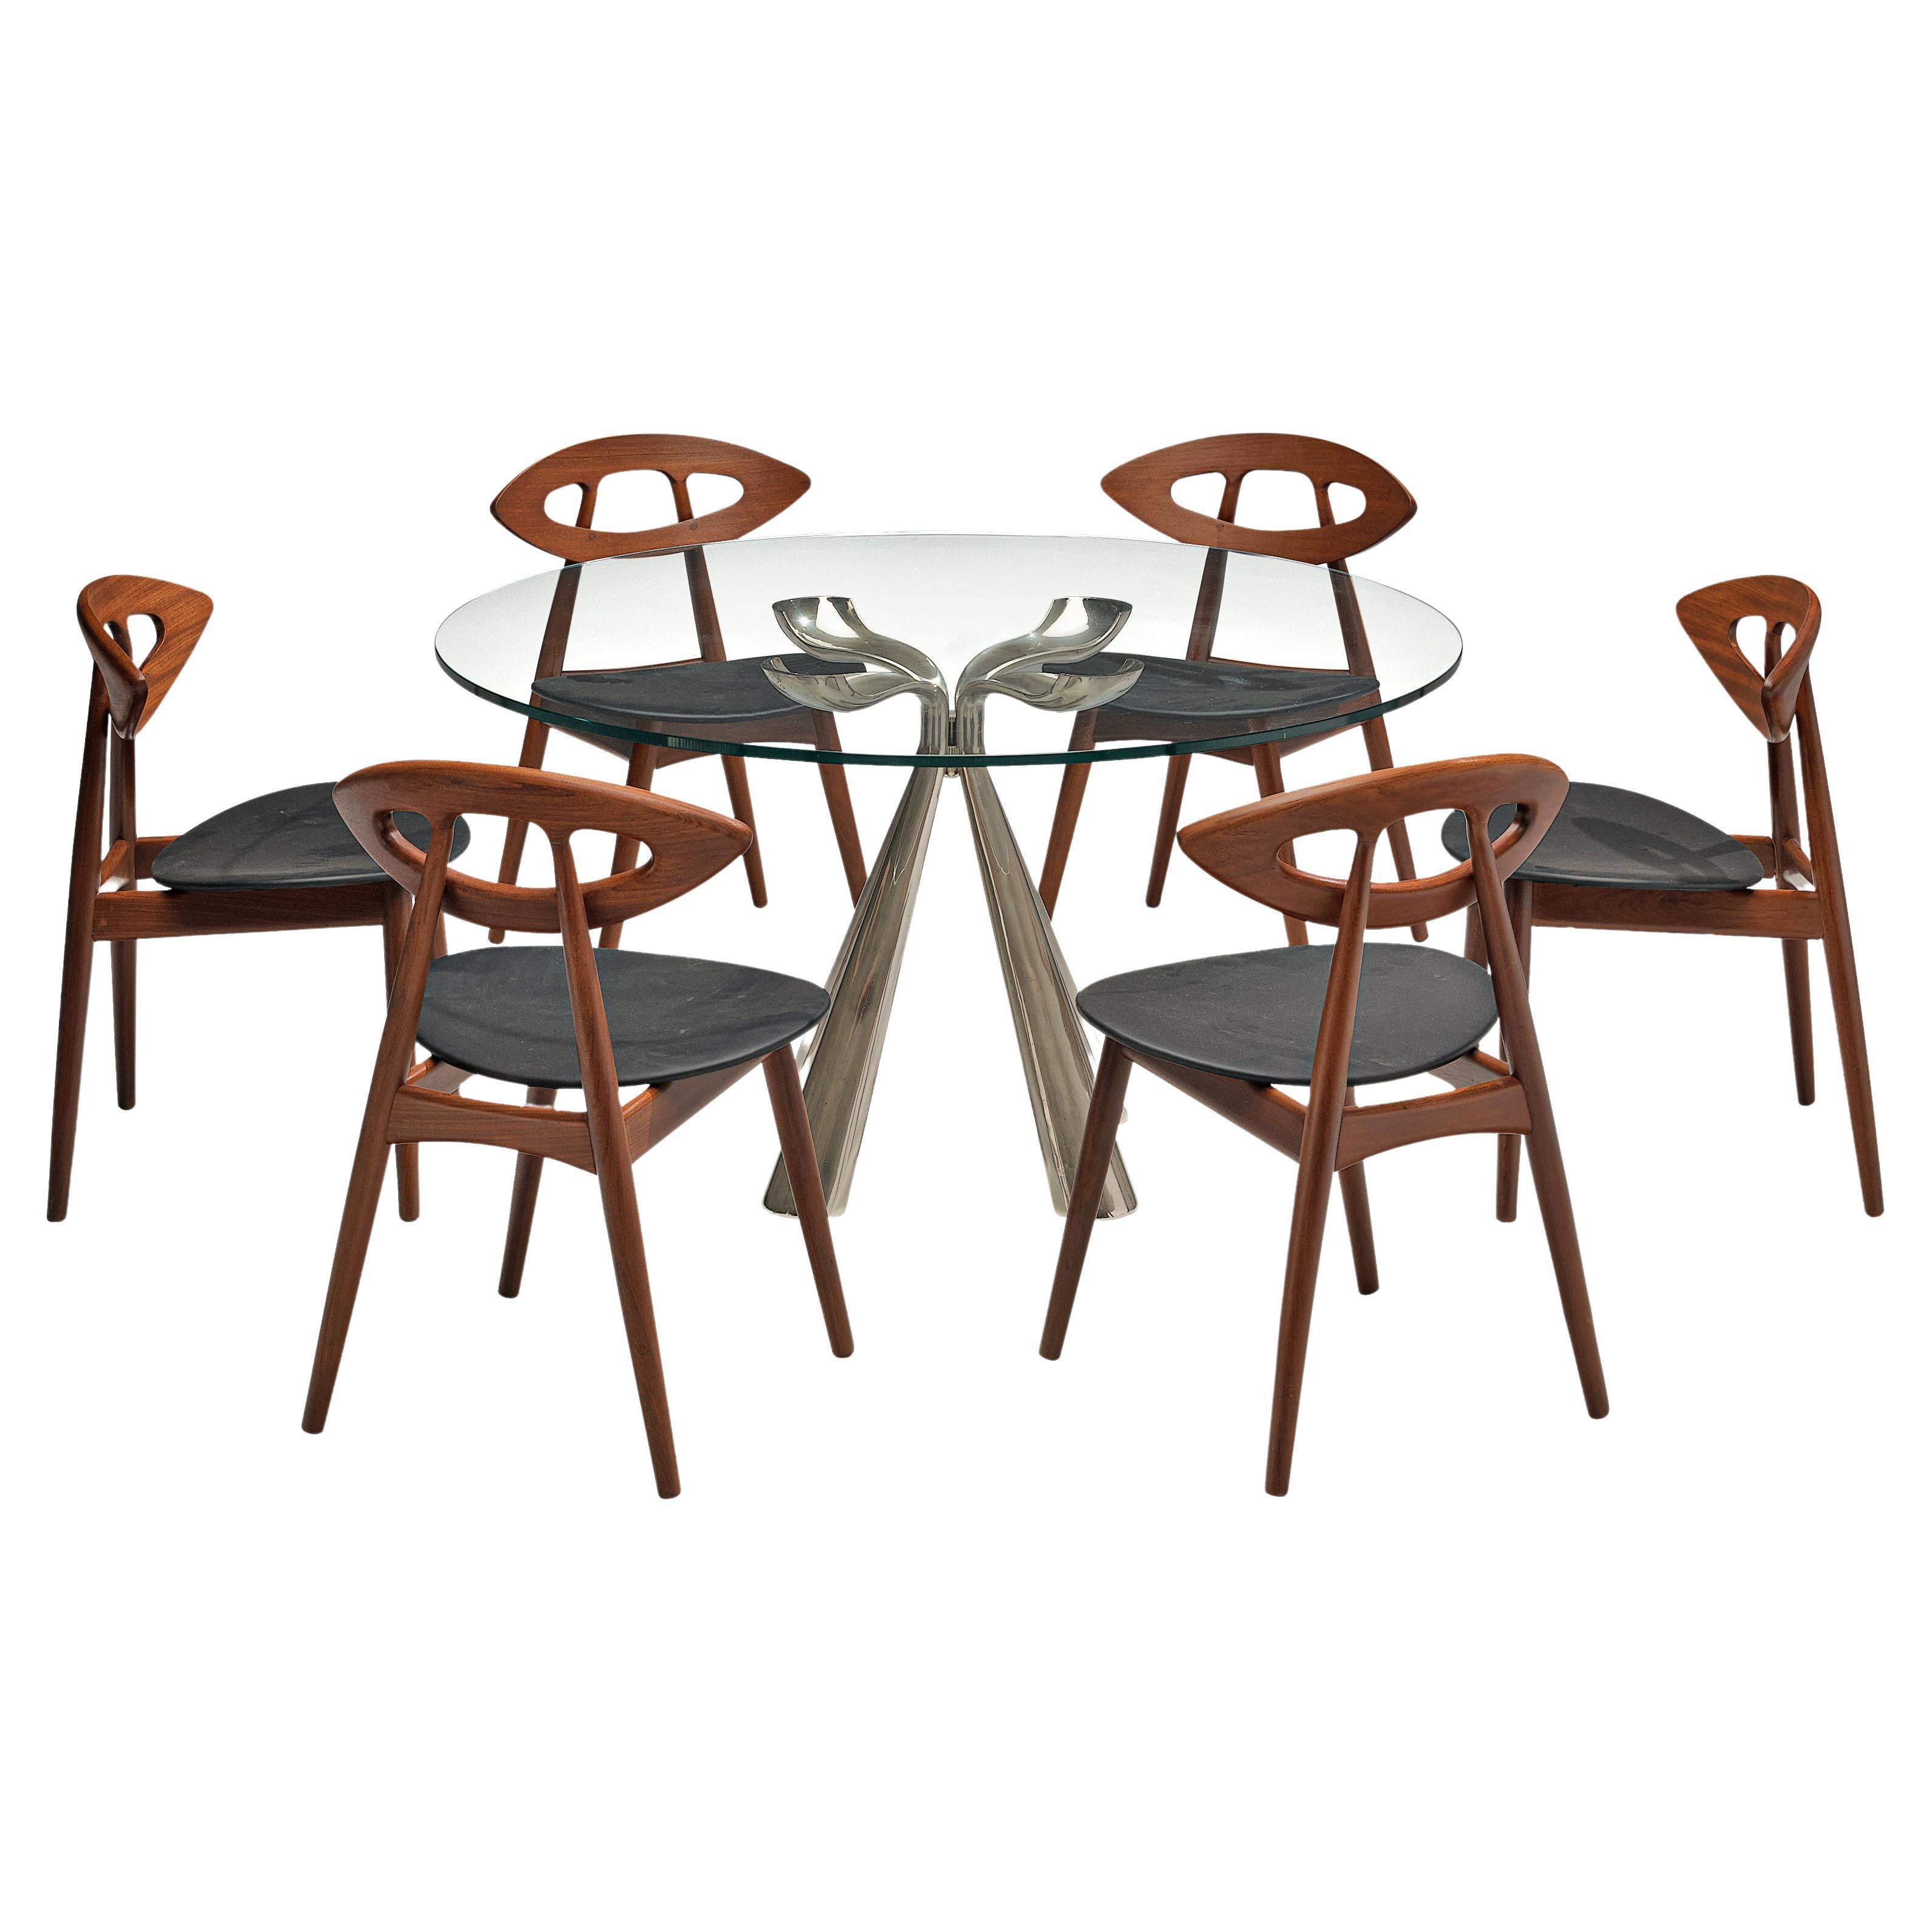 Vittorio Introini Dining Table and Ejvind A. Johansson 'Eye' Dining Chairs